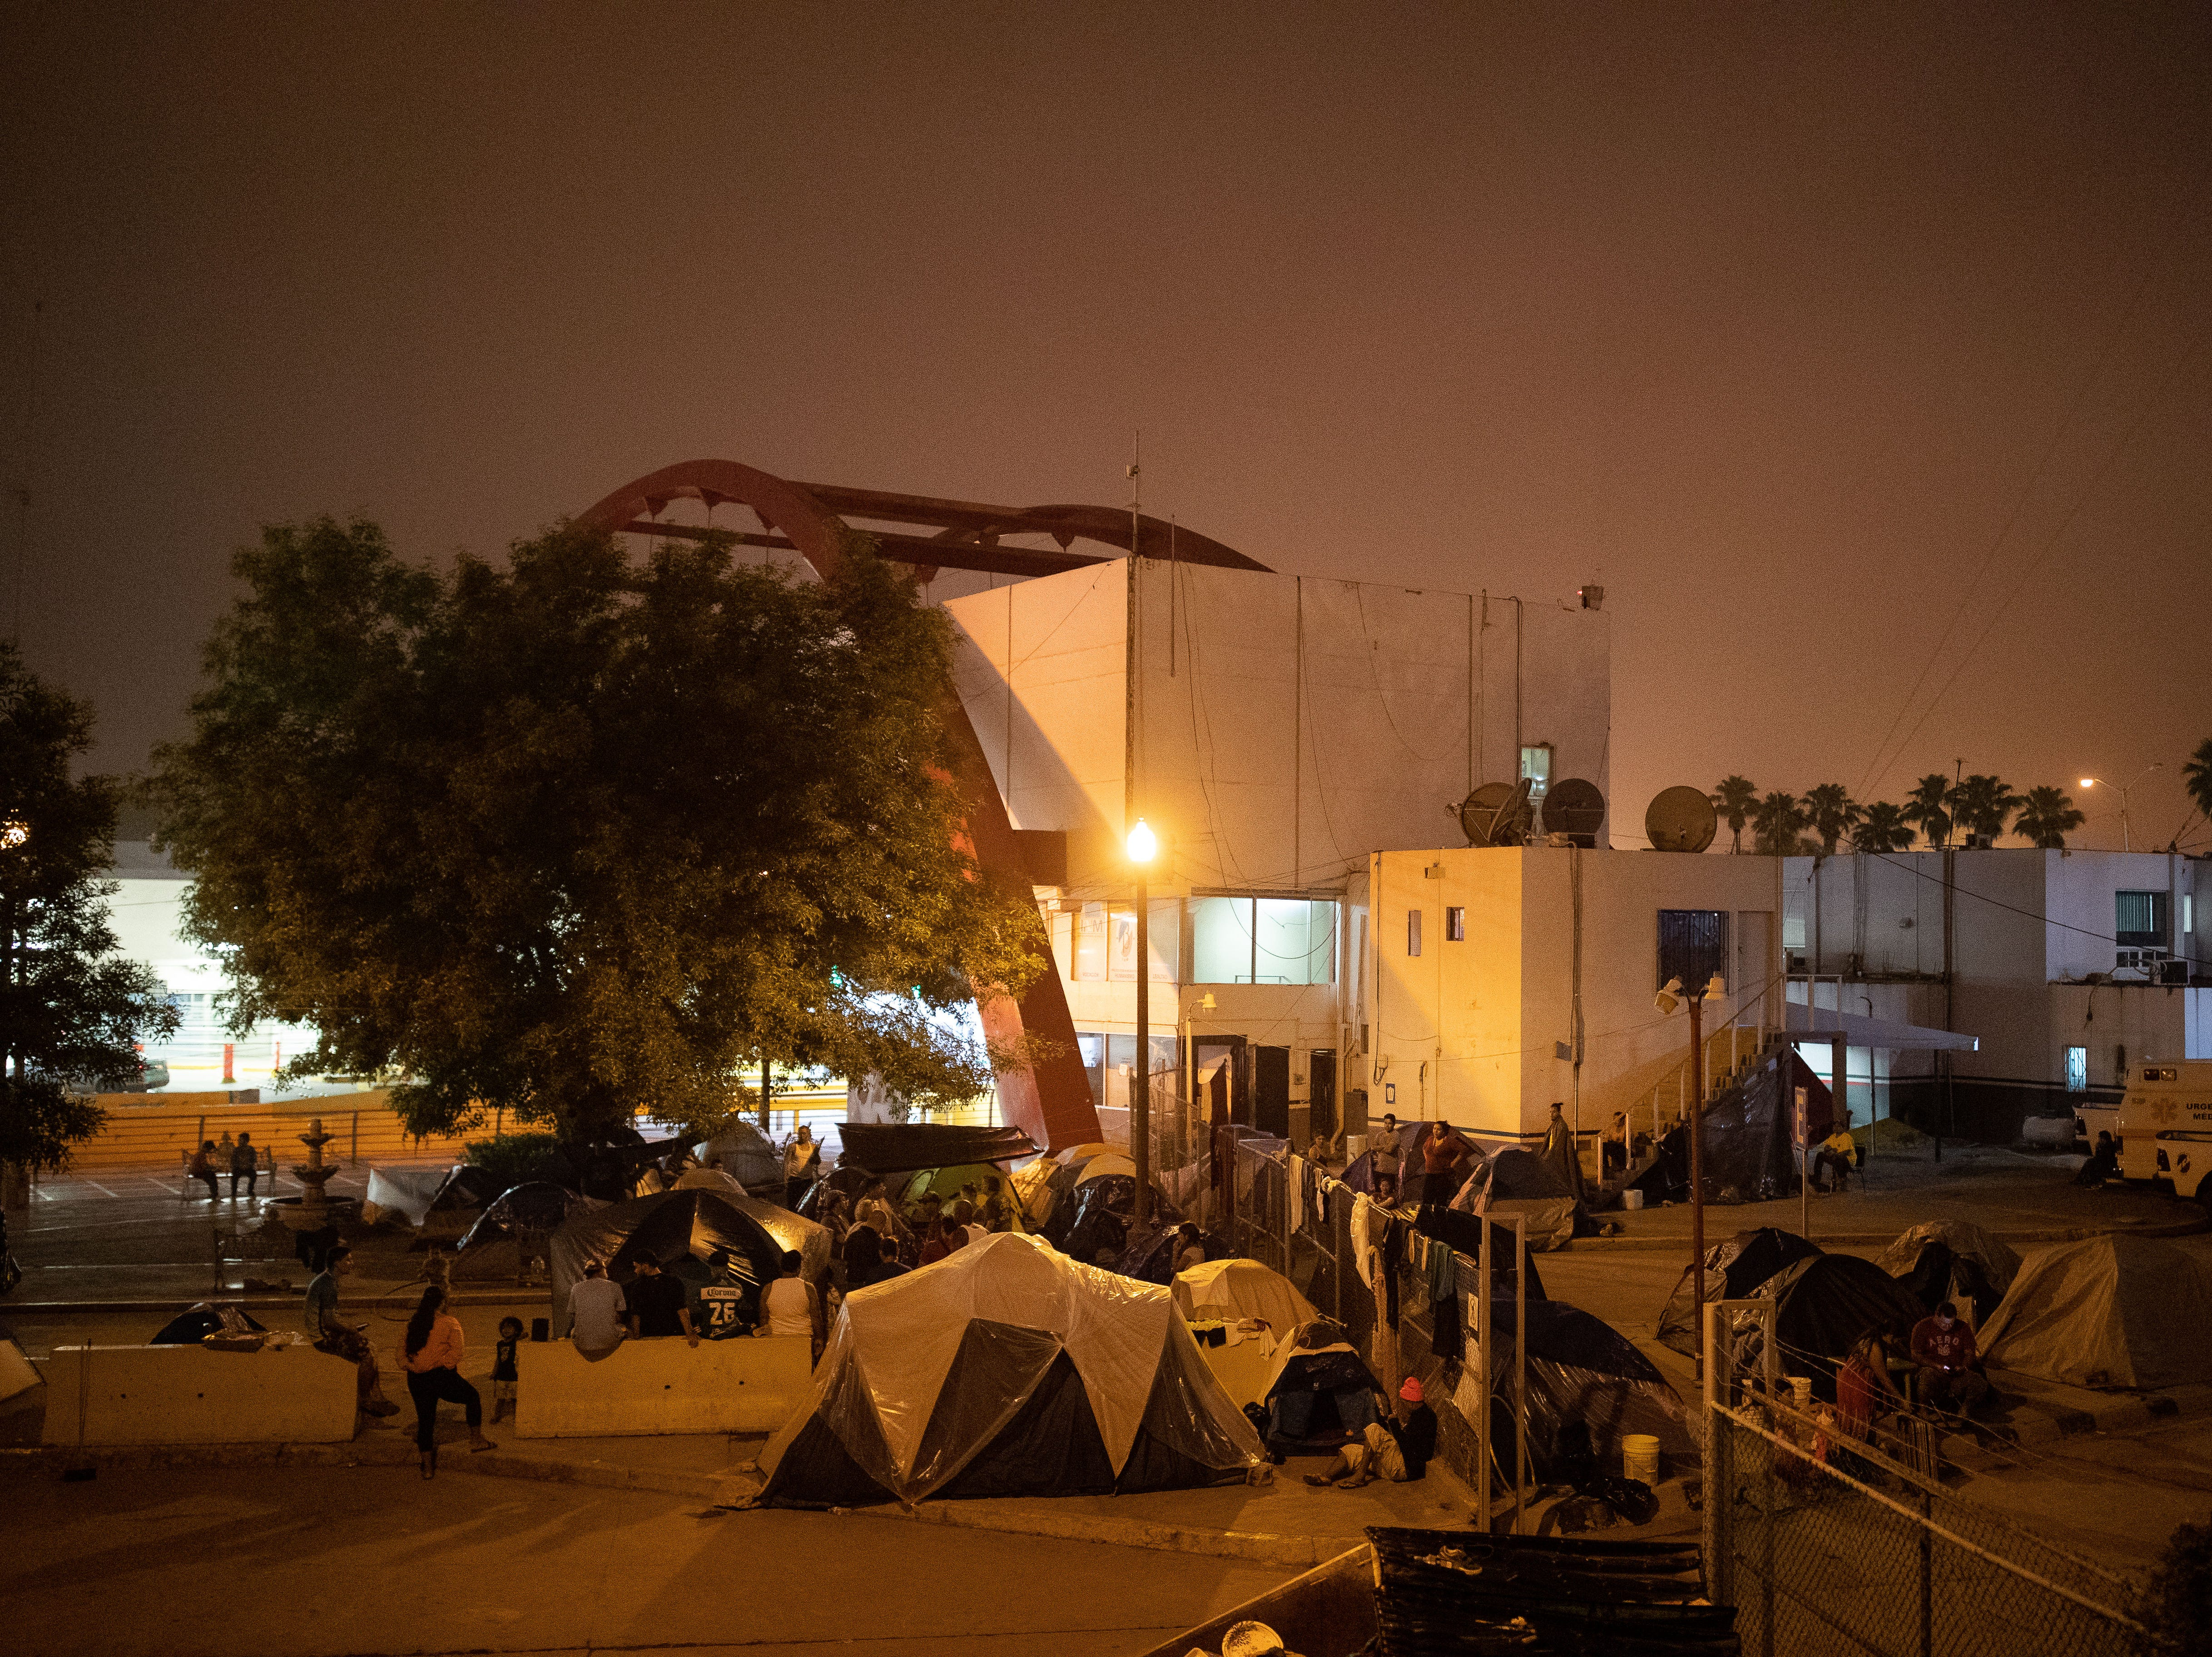 Migrants set up a makeshift camp at the base of the Gateway International Bridge in Matamoros, Mexico where migrants wait for weeks to seek asylum in the U.S on Thursday, April 4, 2019.